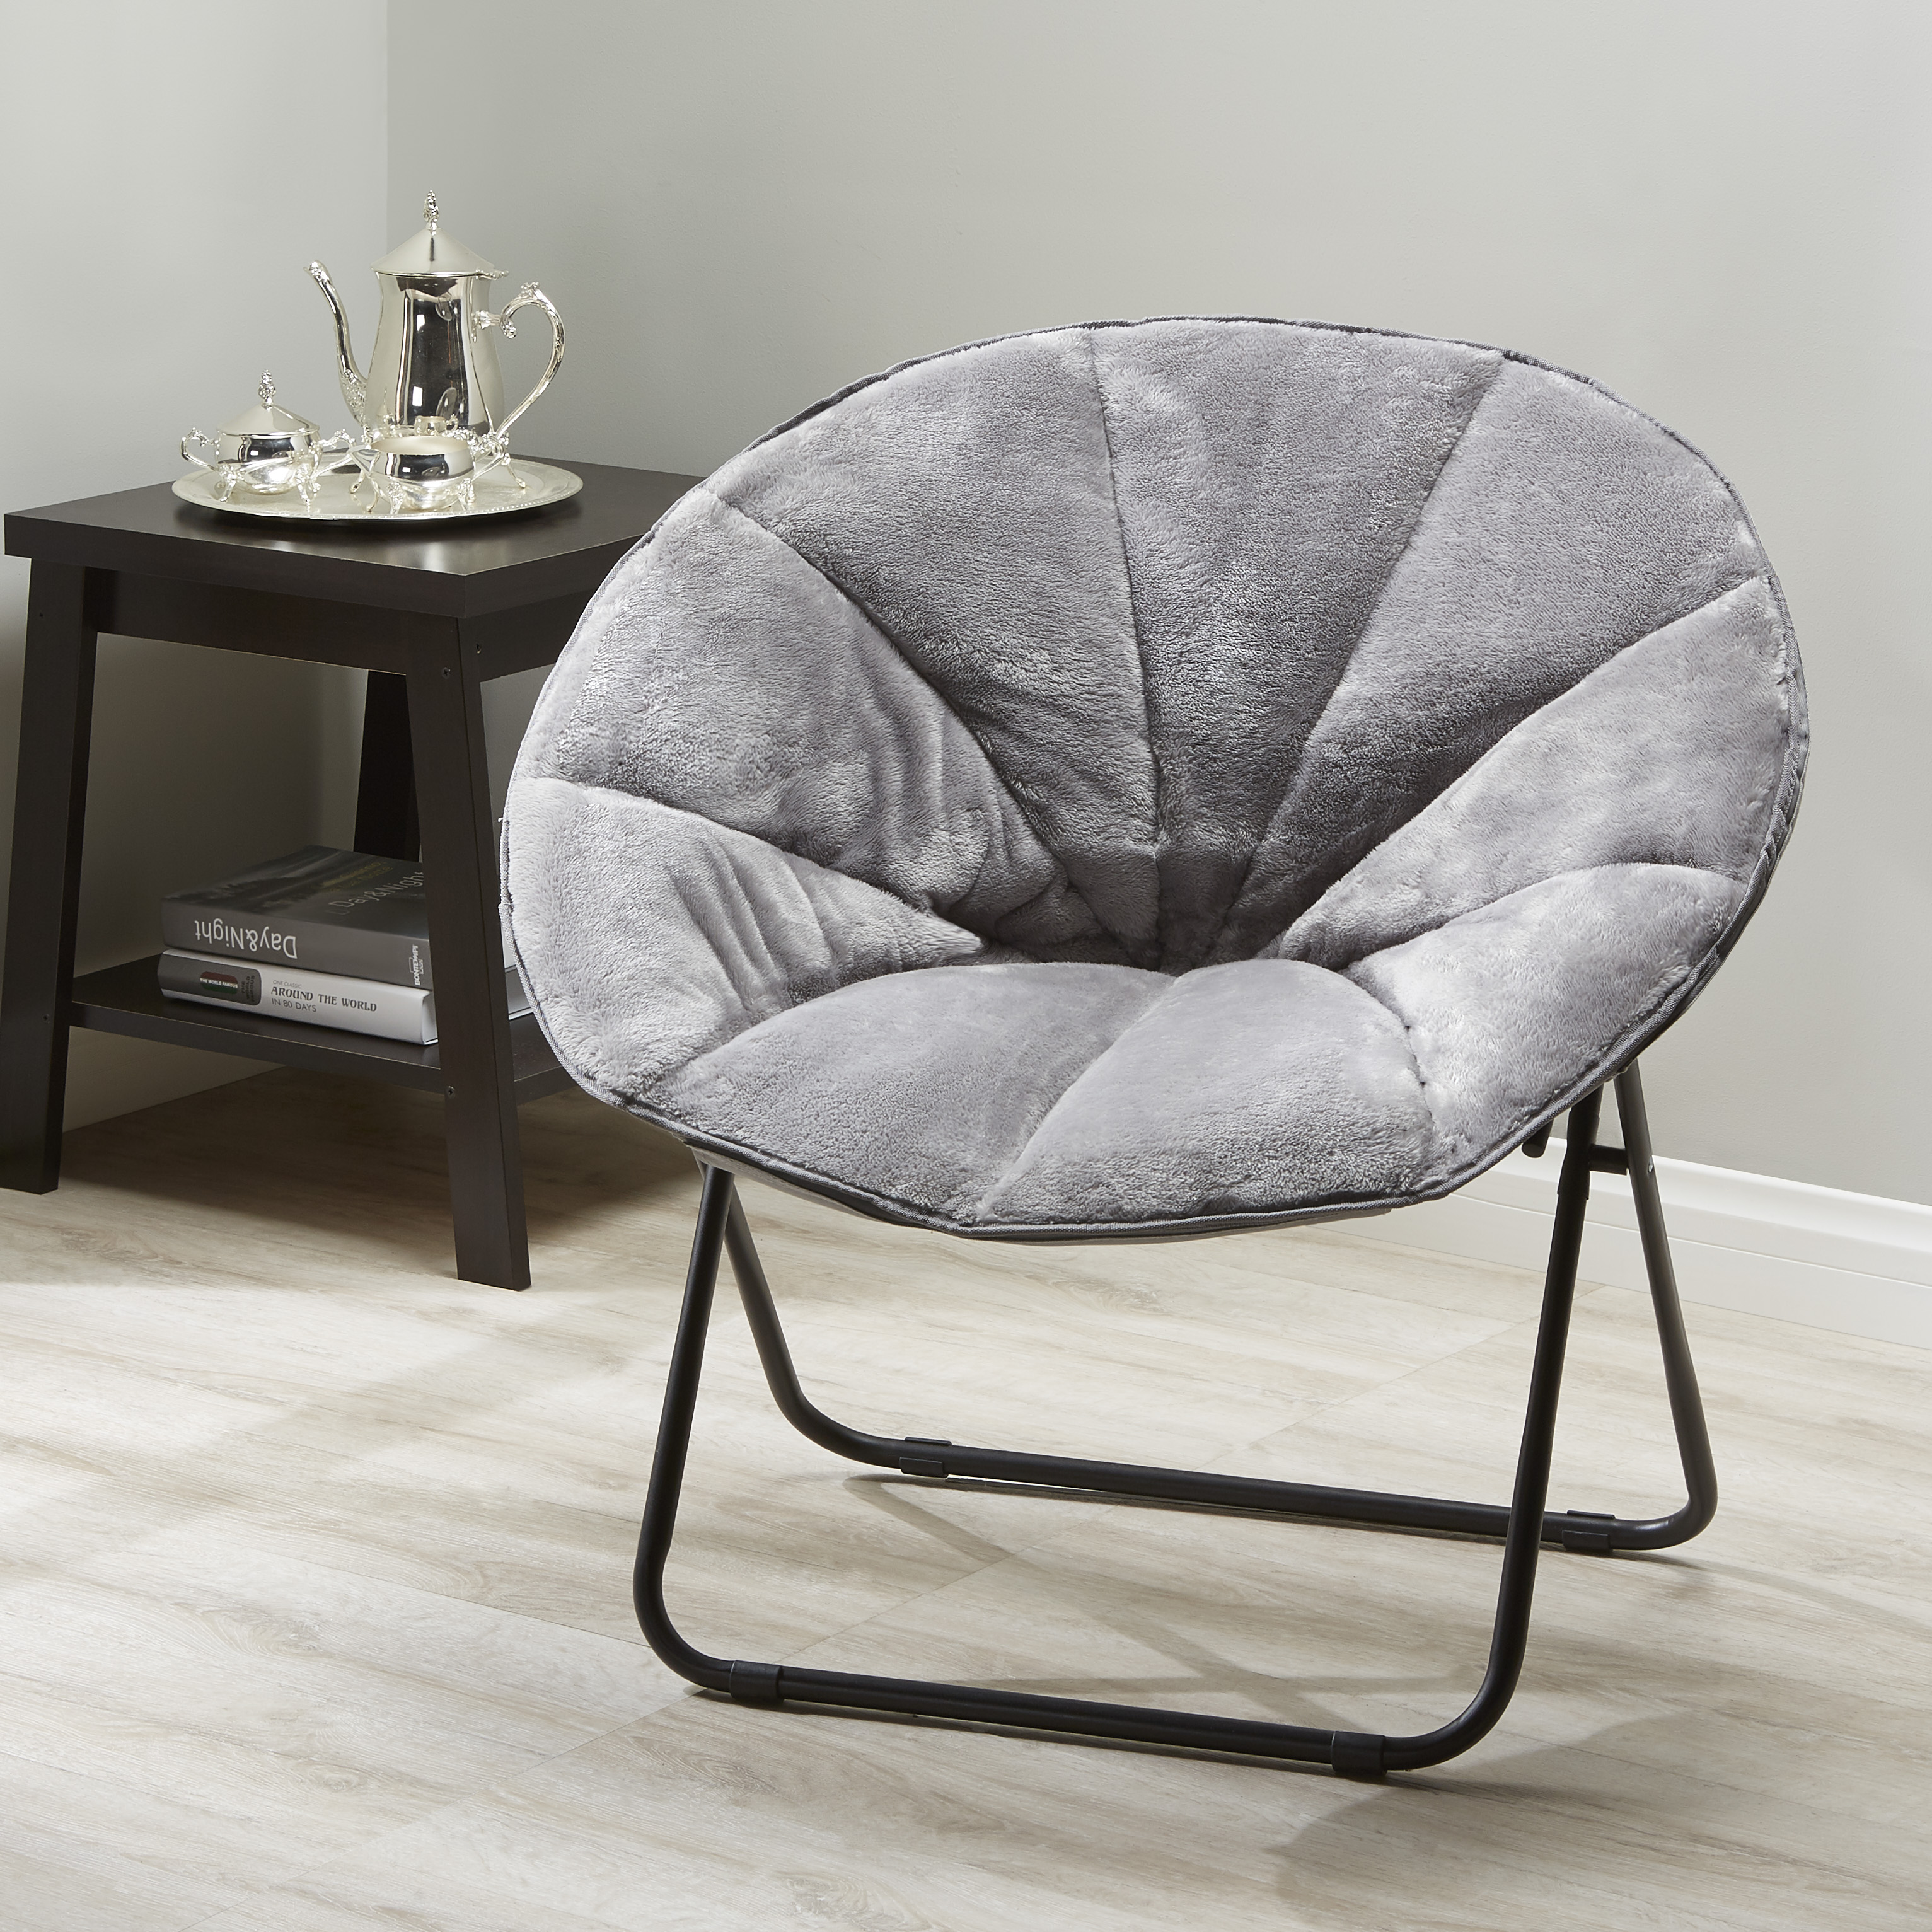 Stupendous Mainstays Folding Plush Saucer Chair Multiple Colors Forskolin Free Trial Chair Design Images Forskolin Free Trialorg